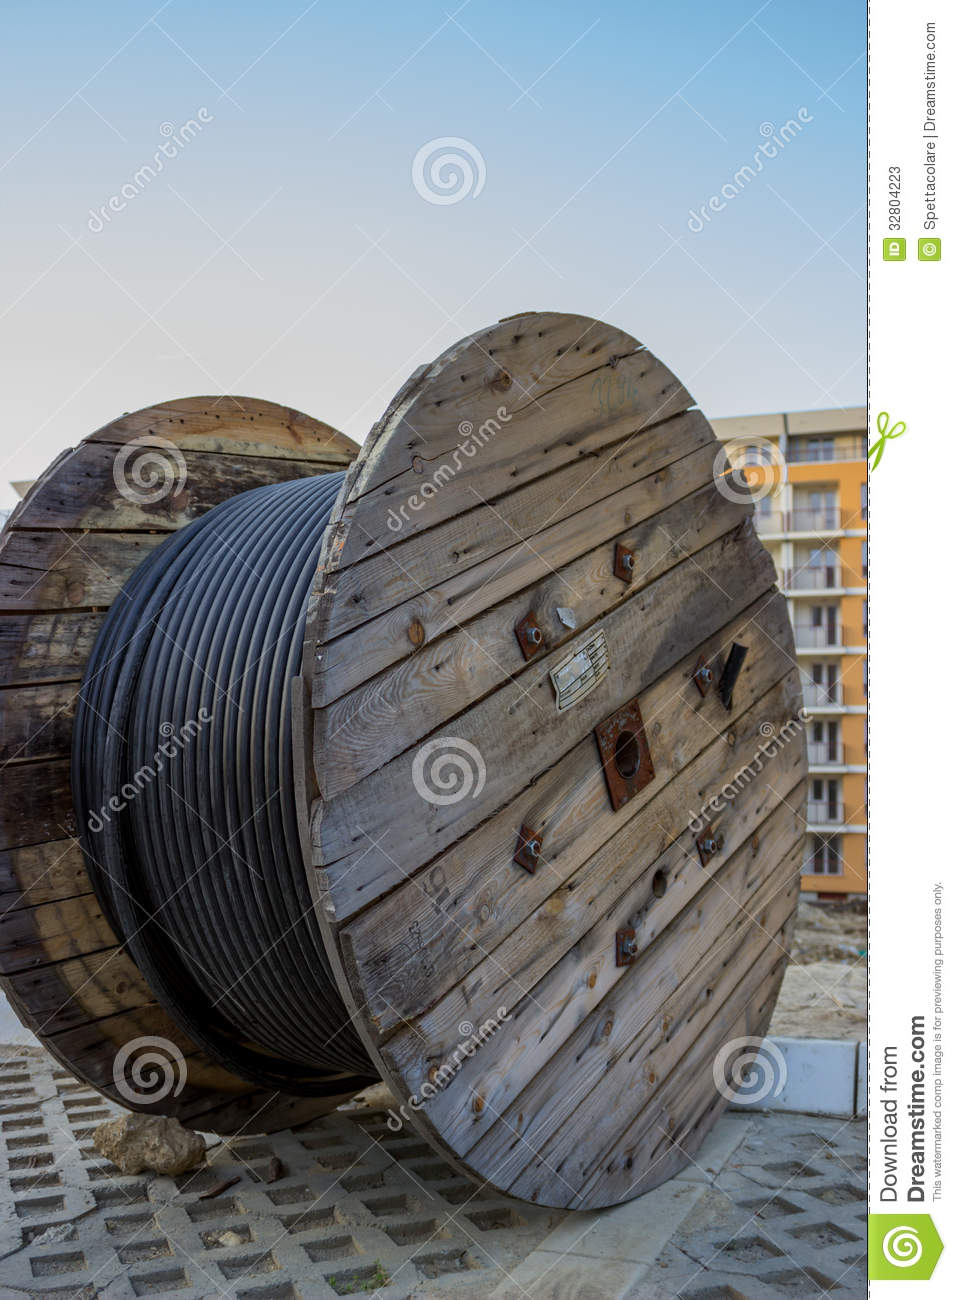 Cable Drum Stock Photos.